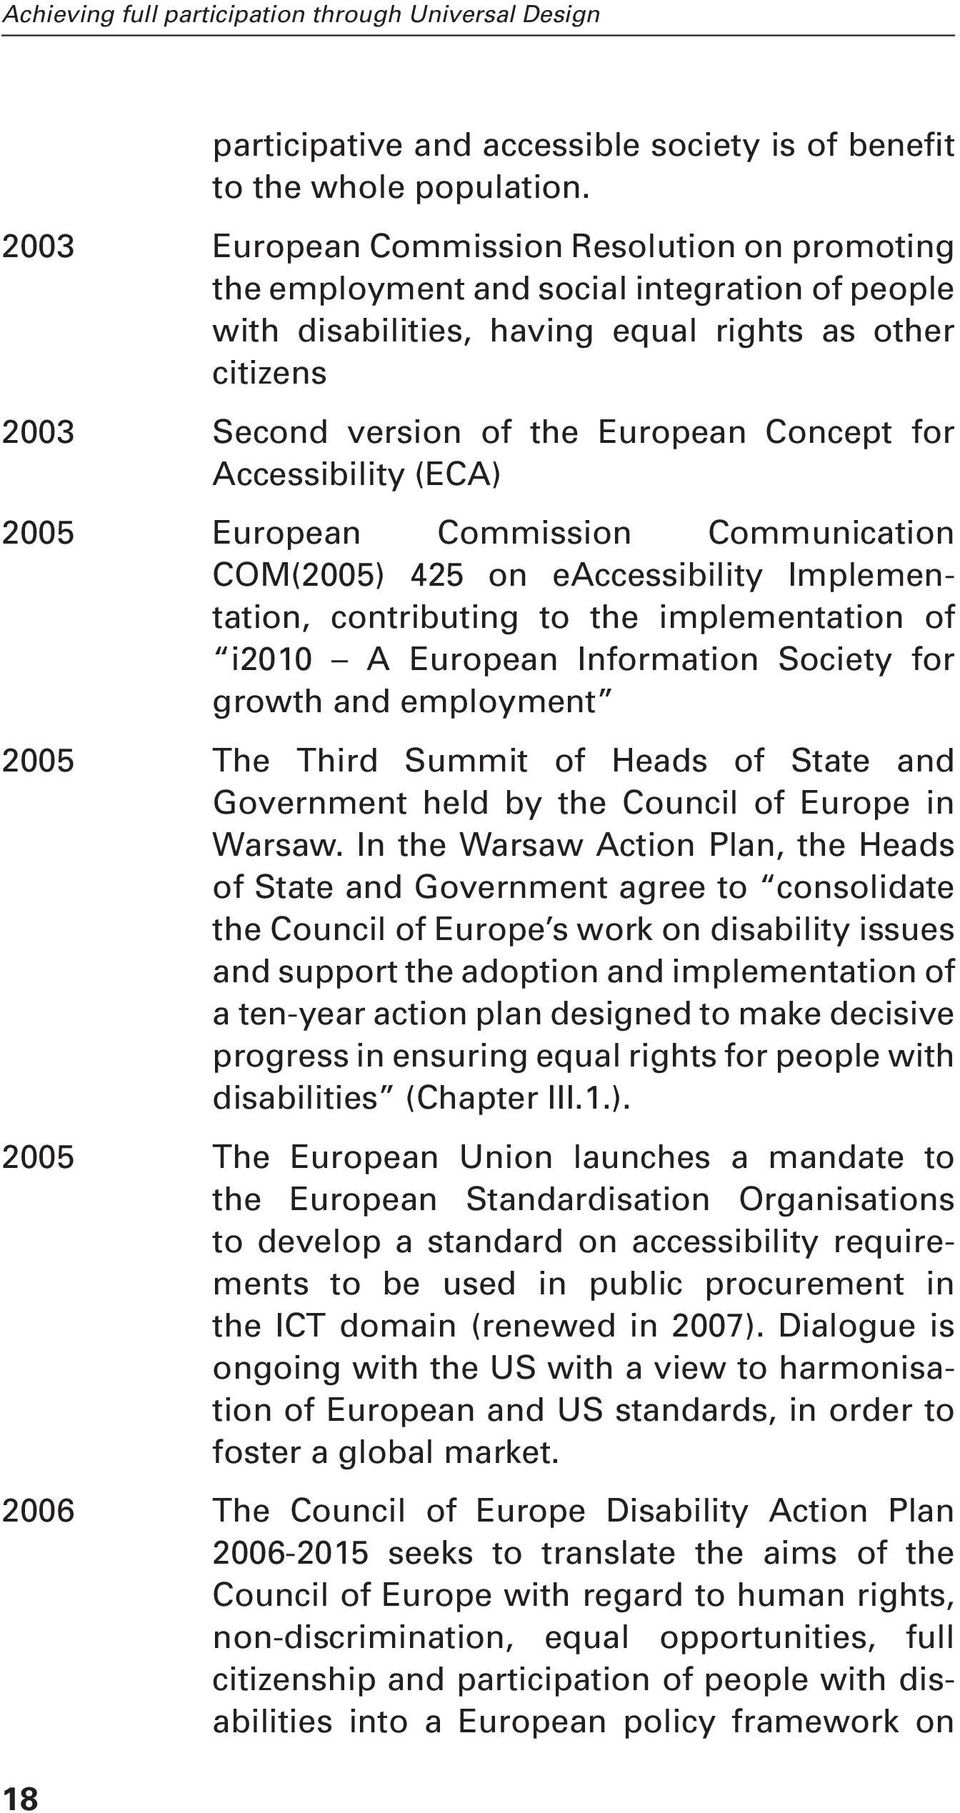 for Accessibility (ECA) 2005 European Commission Communication COM(2005) 425 on eaccessibility, contributing to the implementation of i2010 A European Information Society for growth and employment